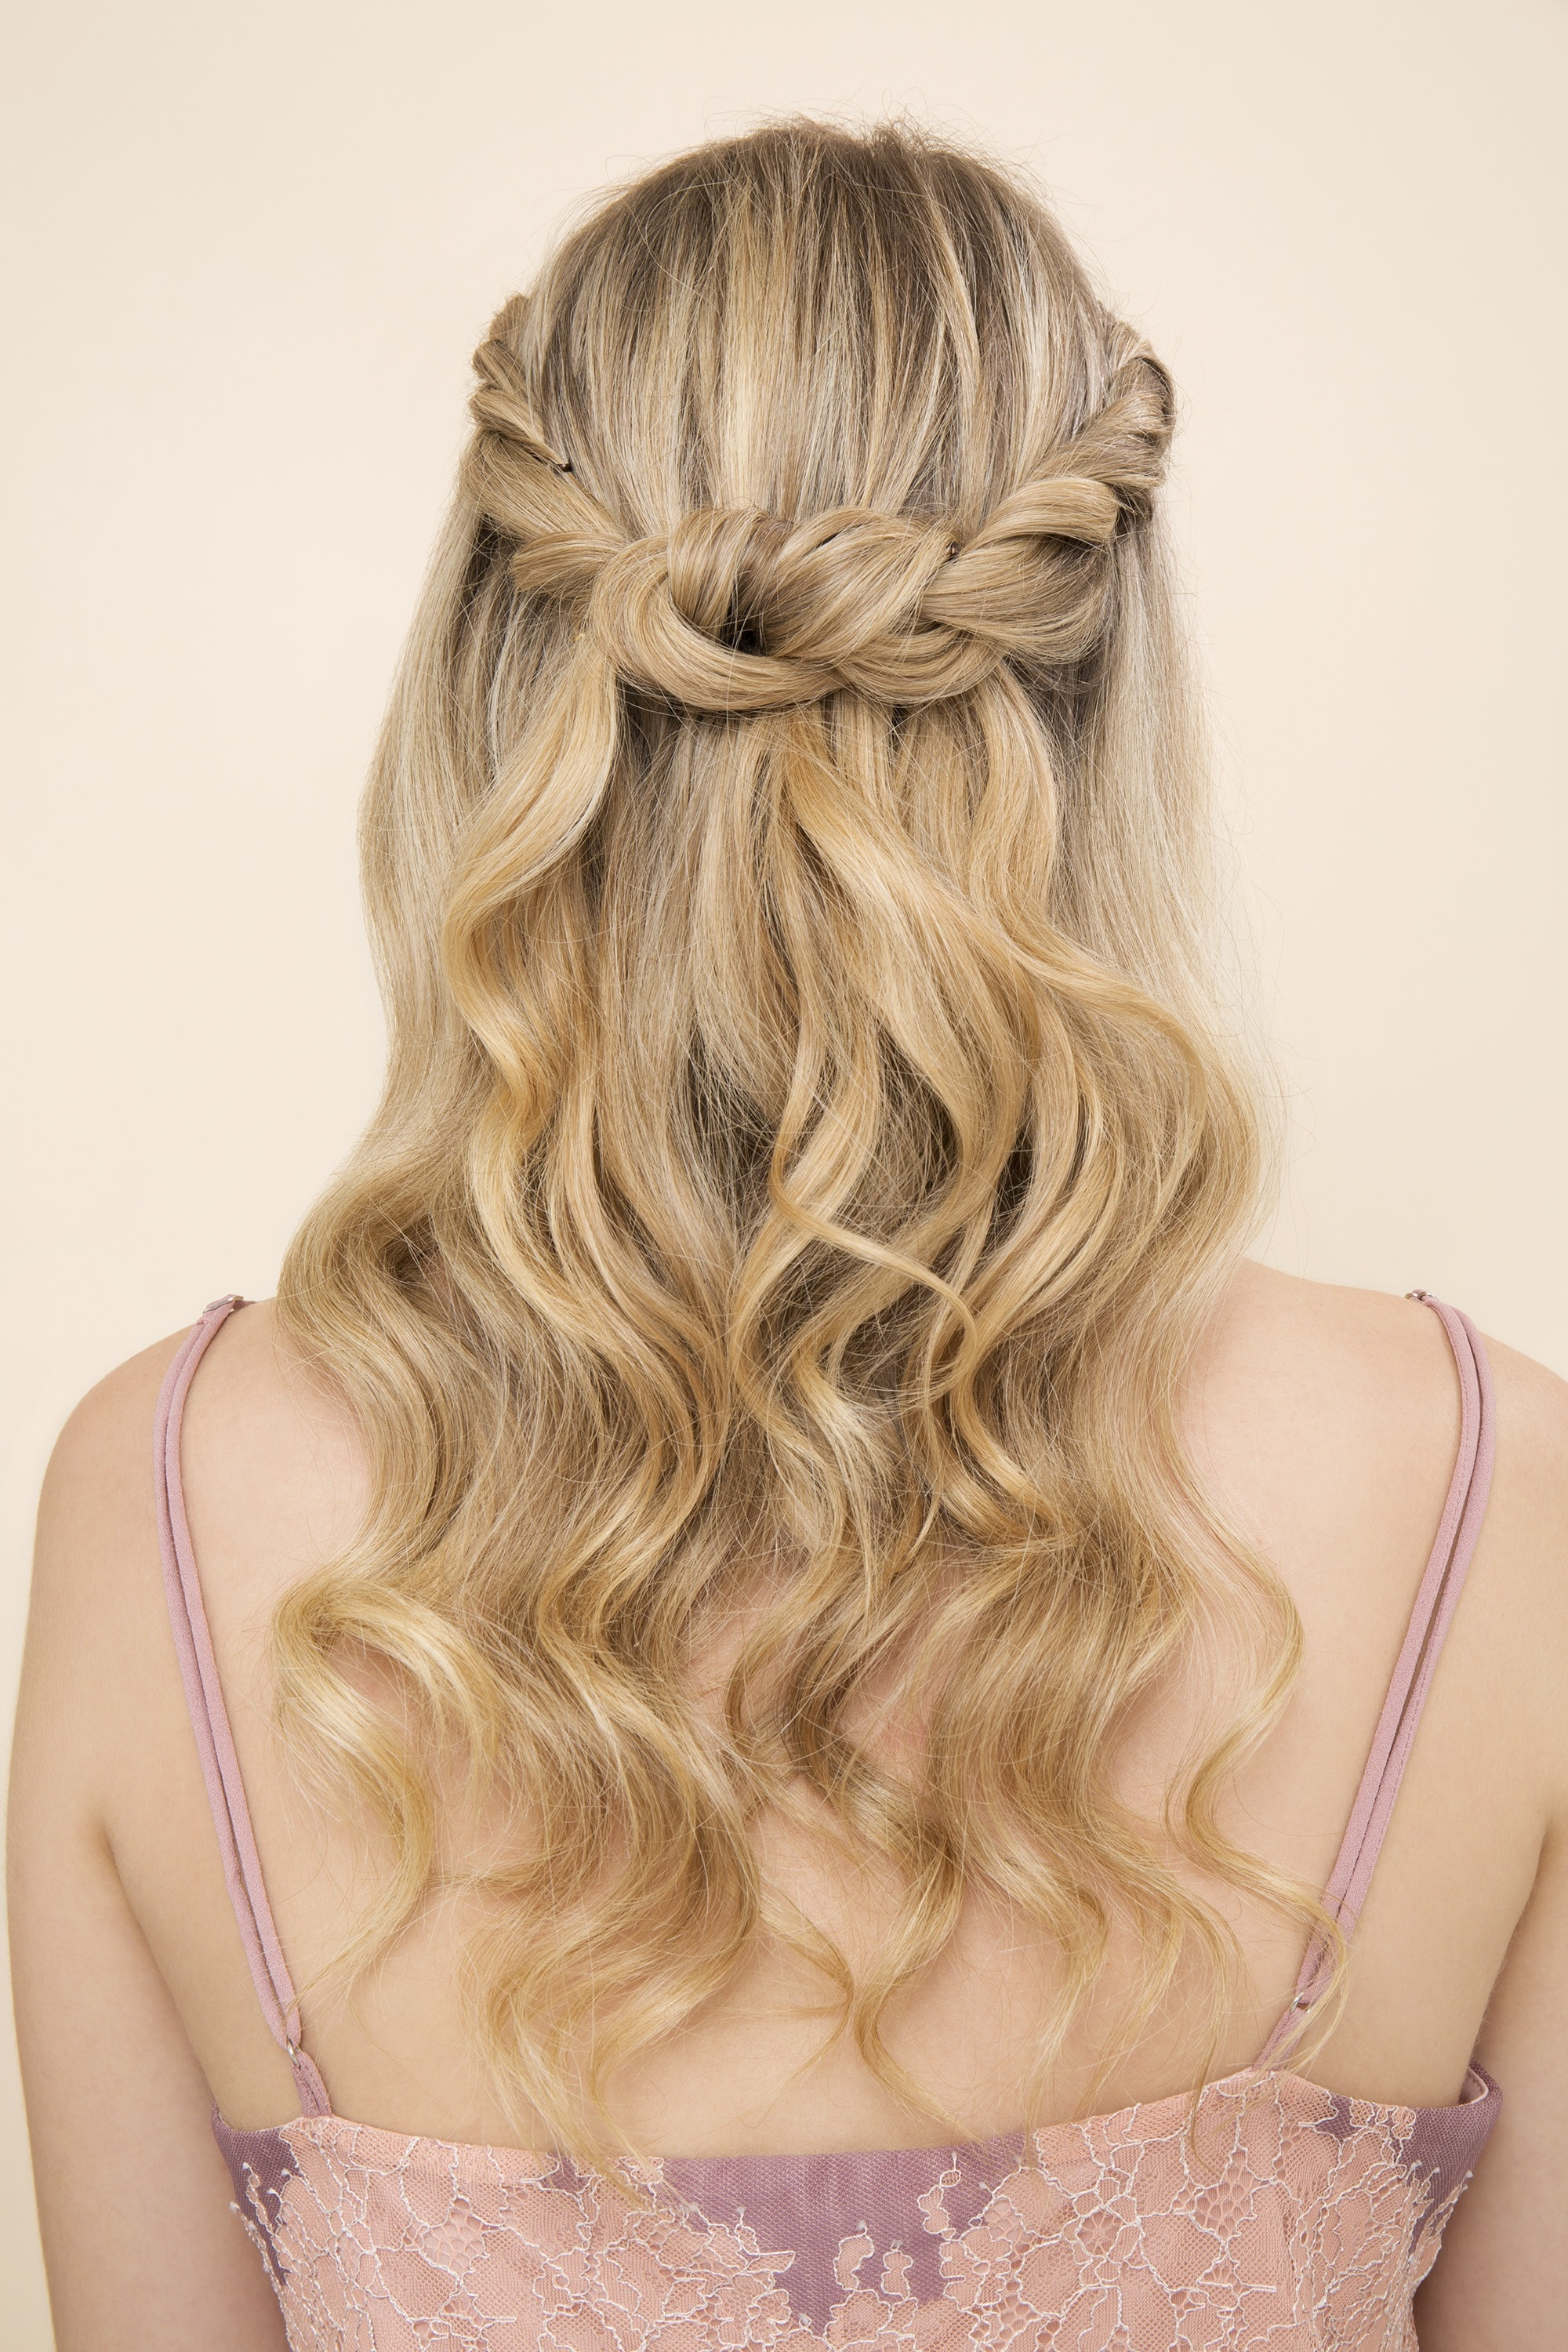 12 Best Half Up, Half Down Prom Hairstyles  All Things Hair